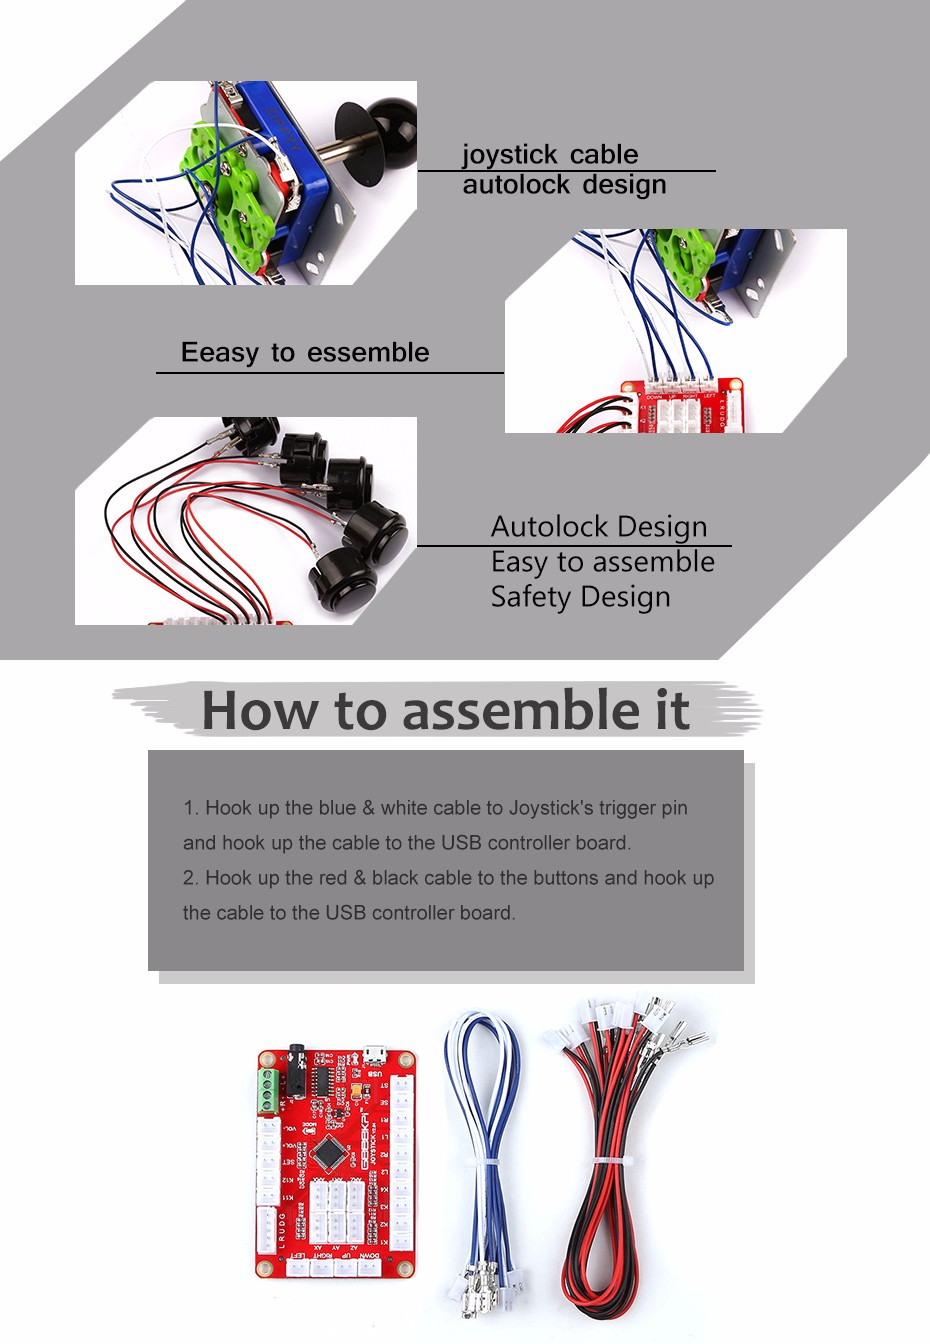 Retro Game Kit For Double Players Accessories Raspberry Pi Autoloc Wiring Diagrams Technical Details